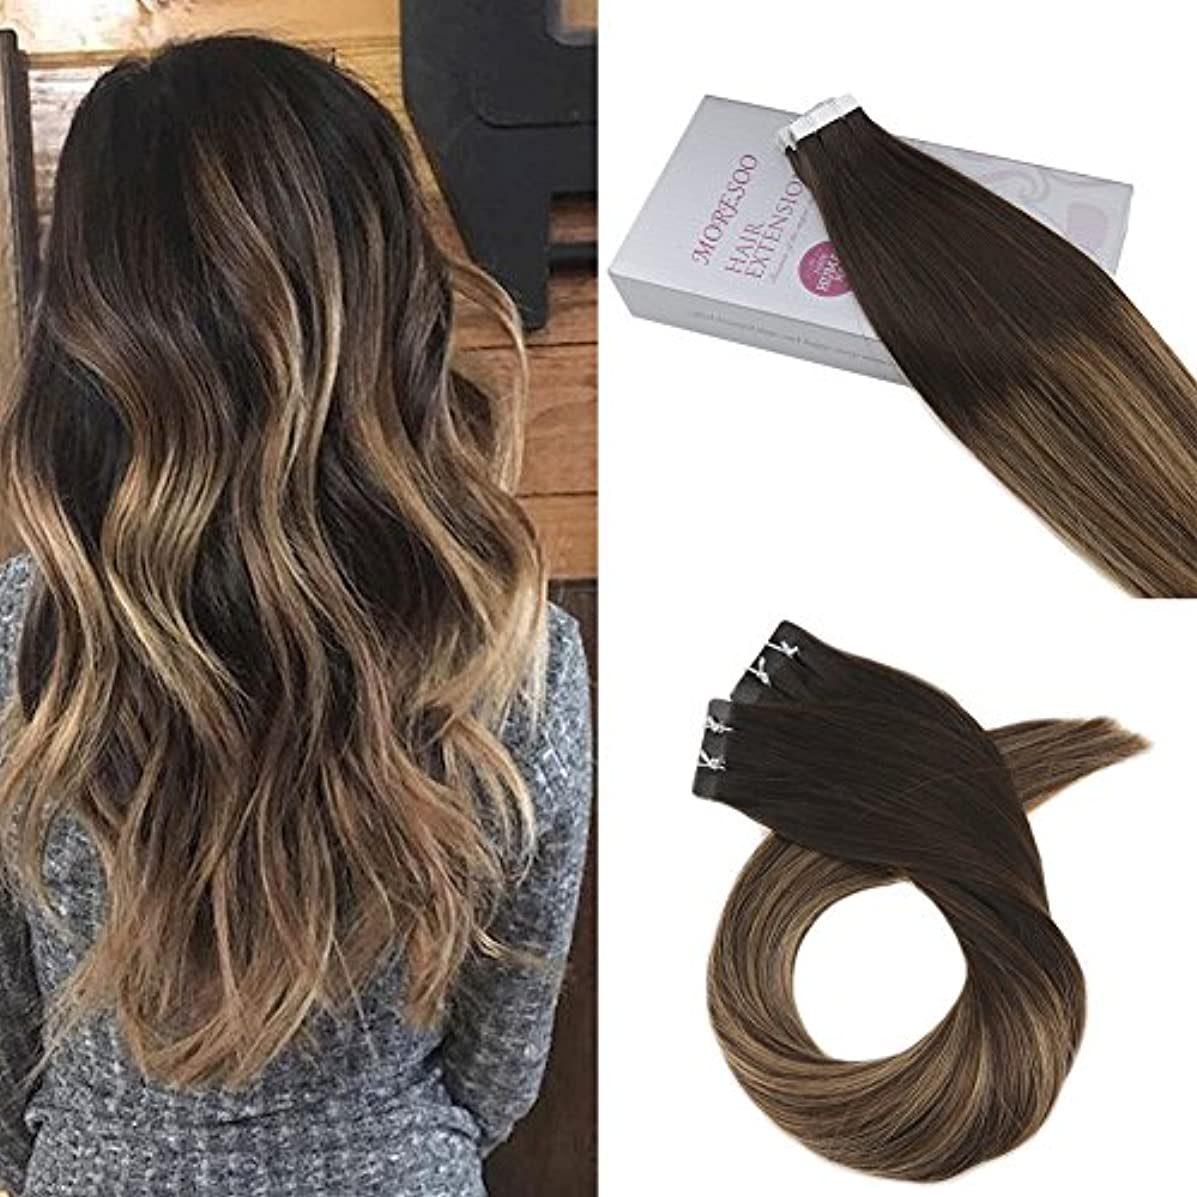 Moresoo 18 Inch Hair Extensions Tape in 20pcs/50g Balayage Colorful Off Black #1B to Brown #3 Highlighted with #27 Blonde Remy Human Hair Seamless Tape on Extensions Real Hair